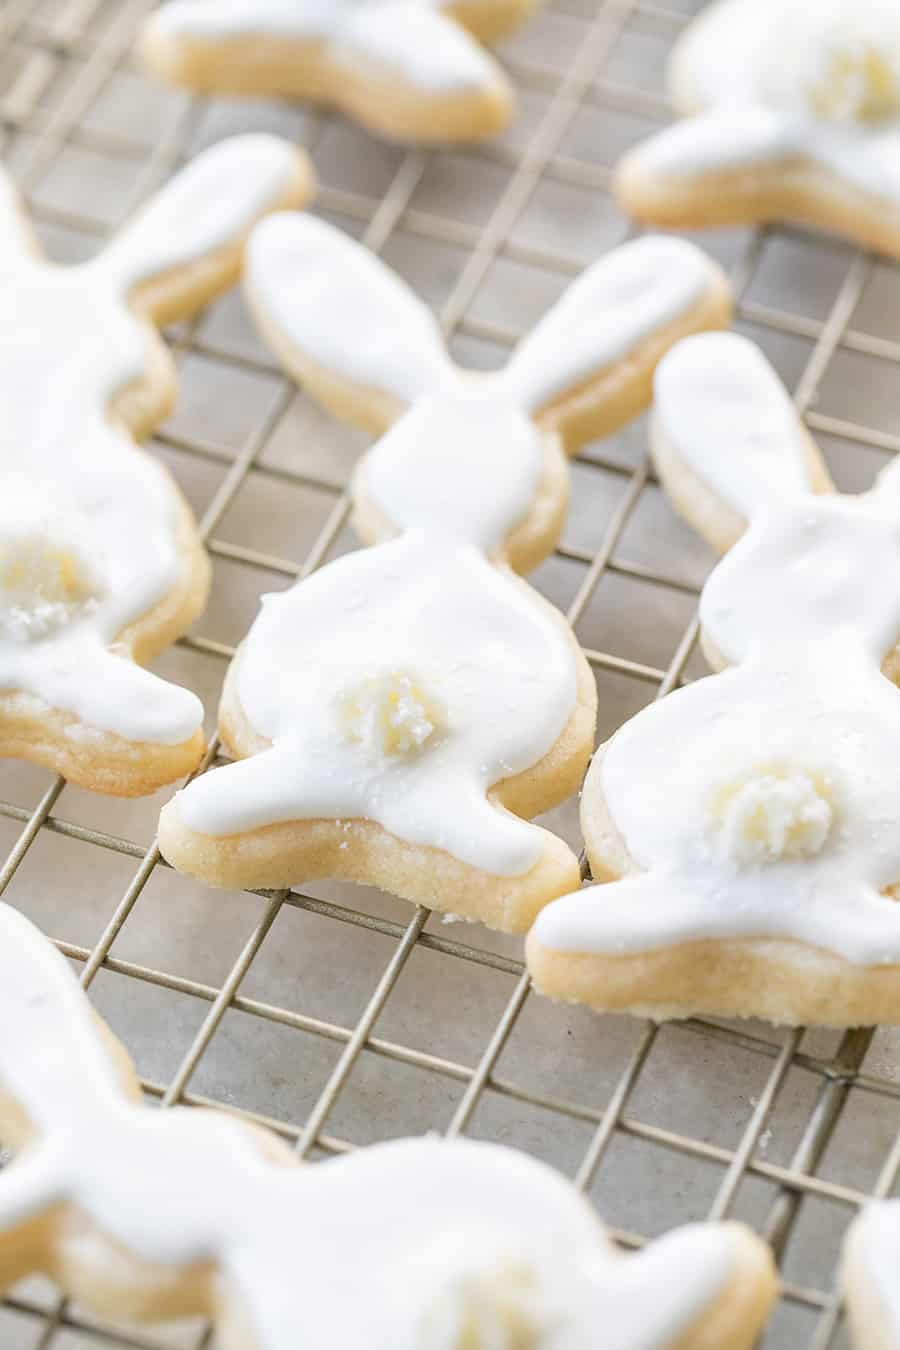 Bunny cookies with white royal icing recipe and little bunny tails.